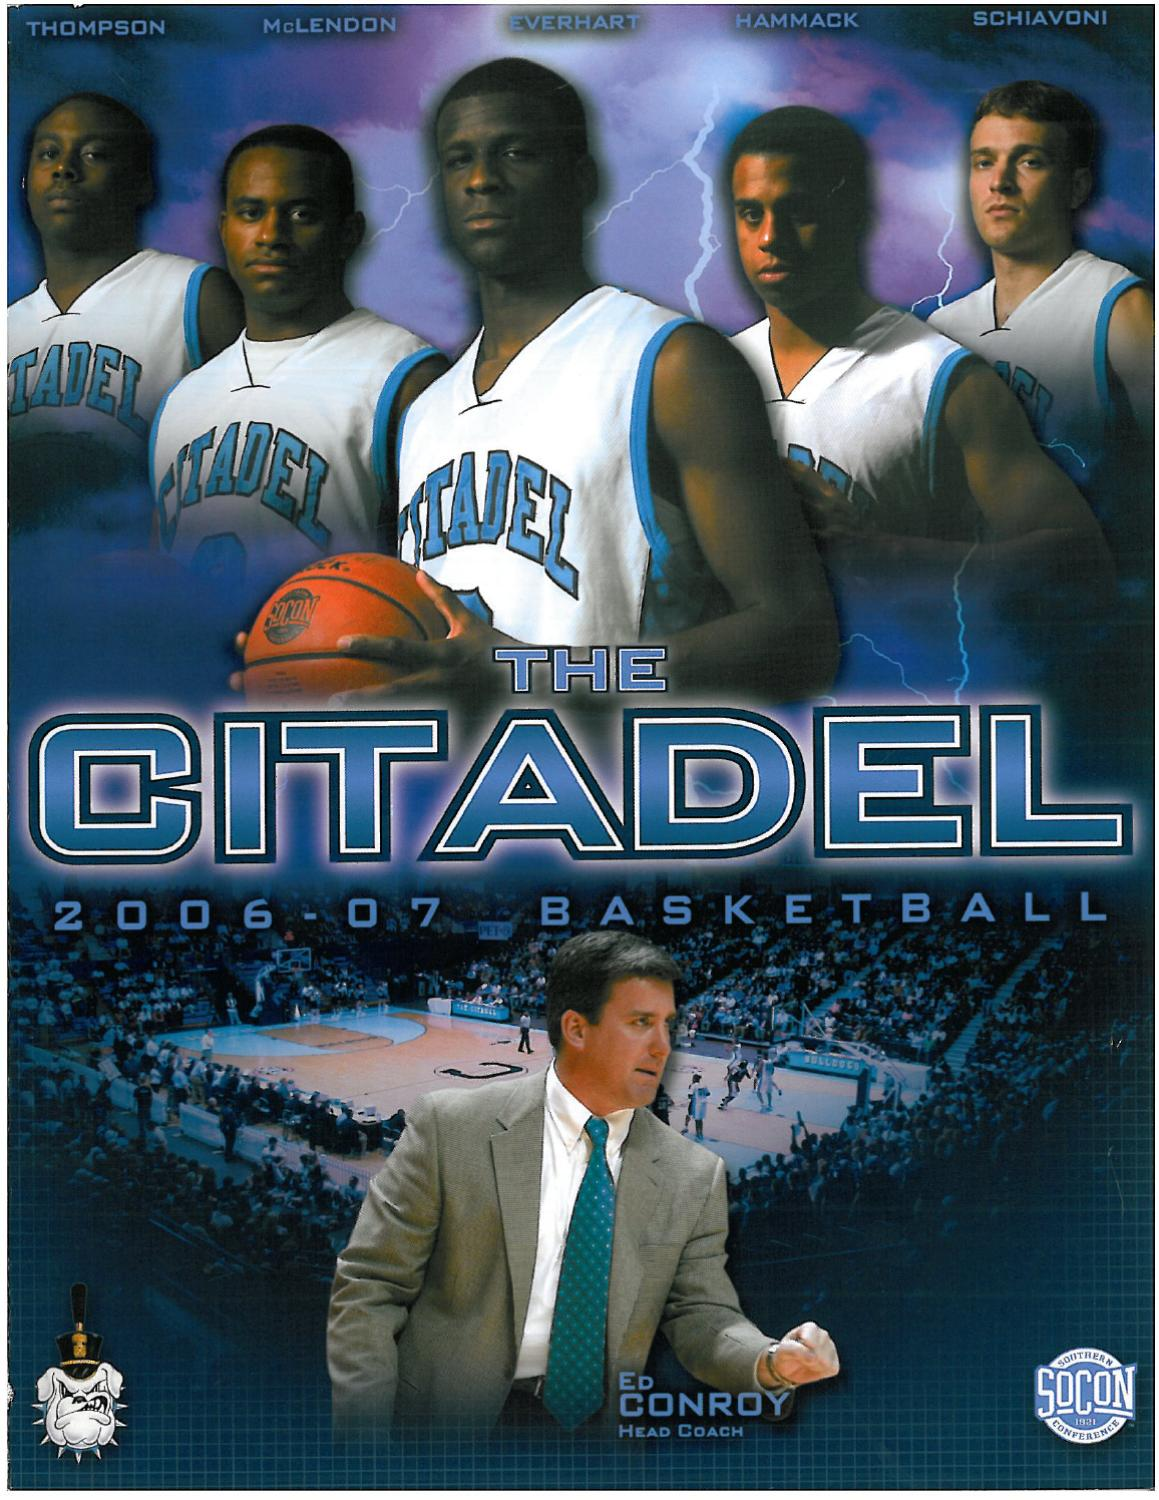 2006-07 The Citadel Basketball Media Guide by Jon Cole - issuu